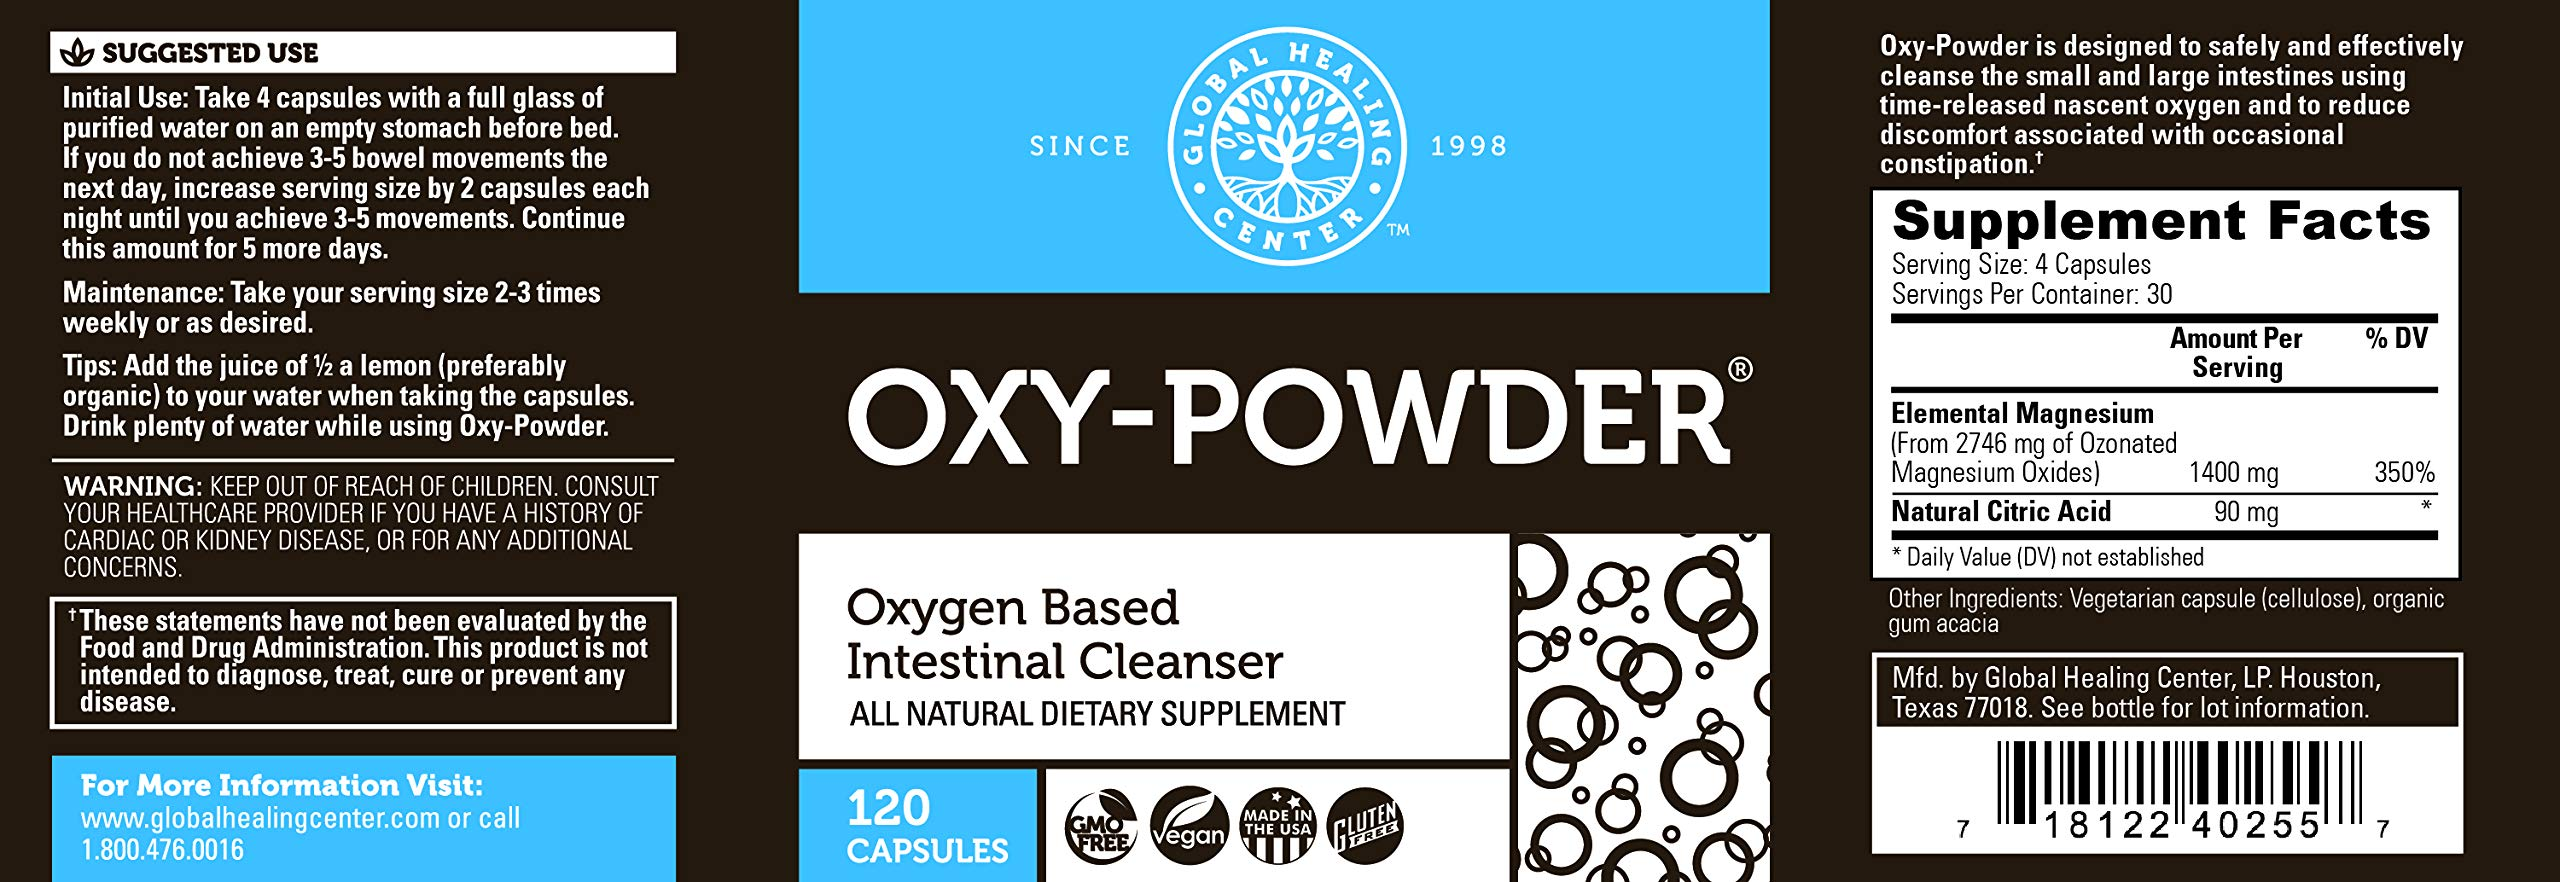 Global Healing Center Oxy-Powder Oxygen Based Safe and Natural ...